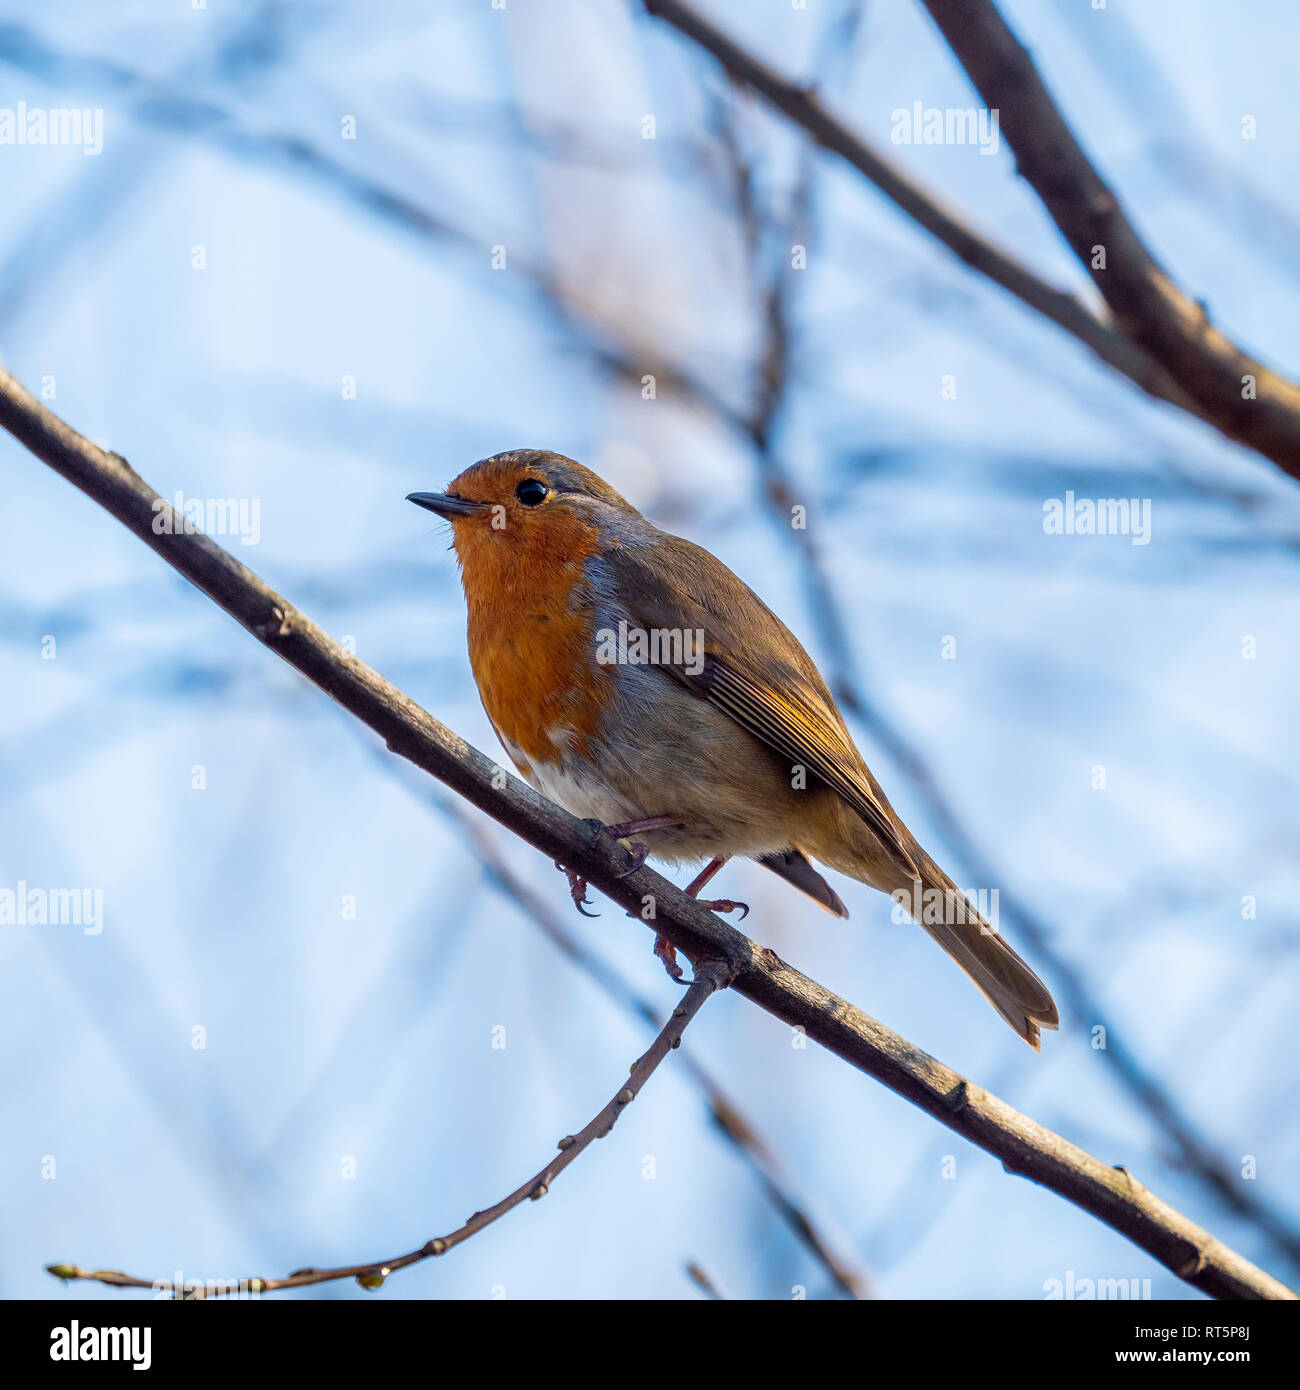 A small Robin (erithacus rubecula) perched on a tree branch Stock Photo